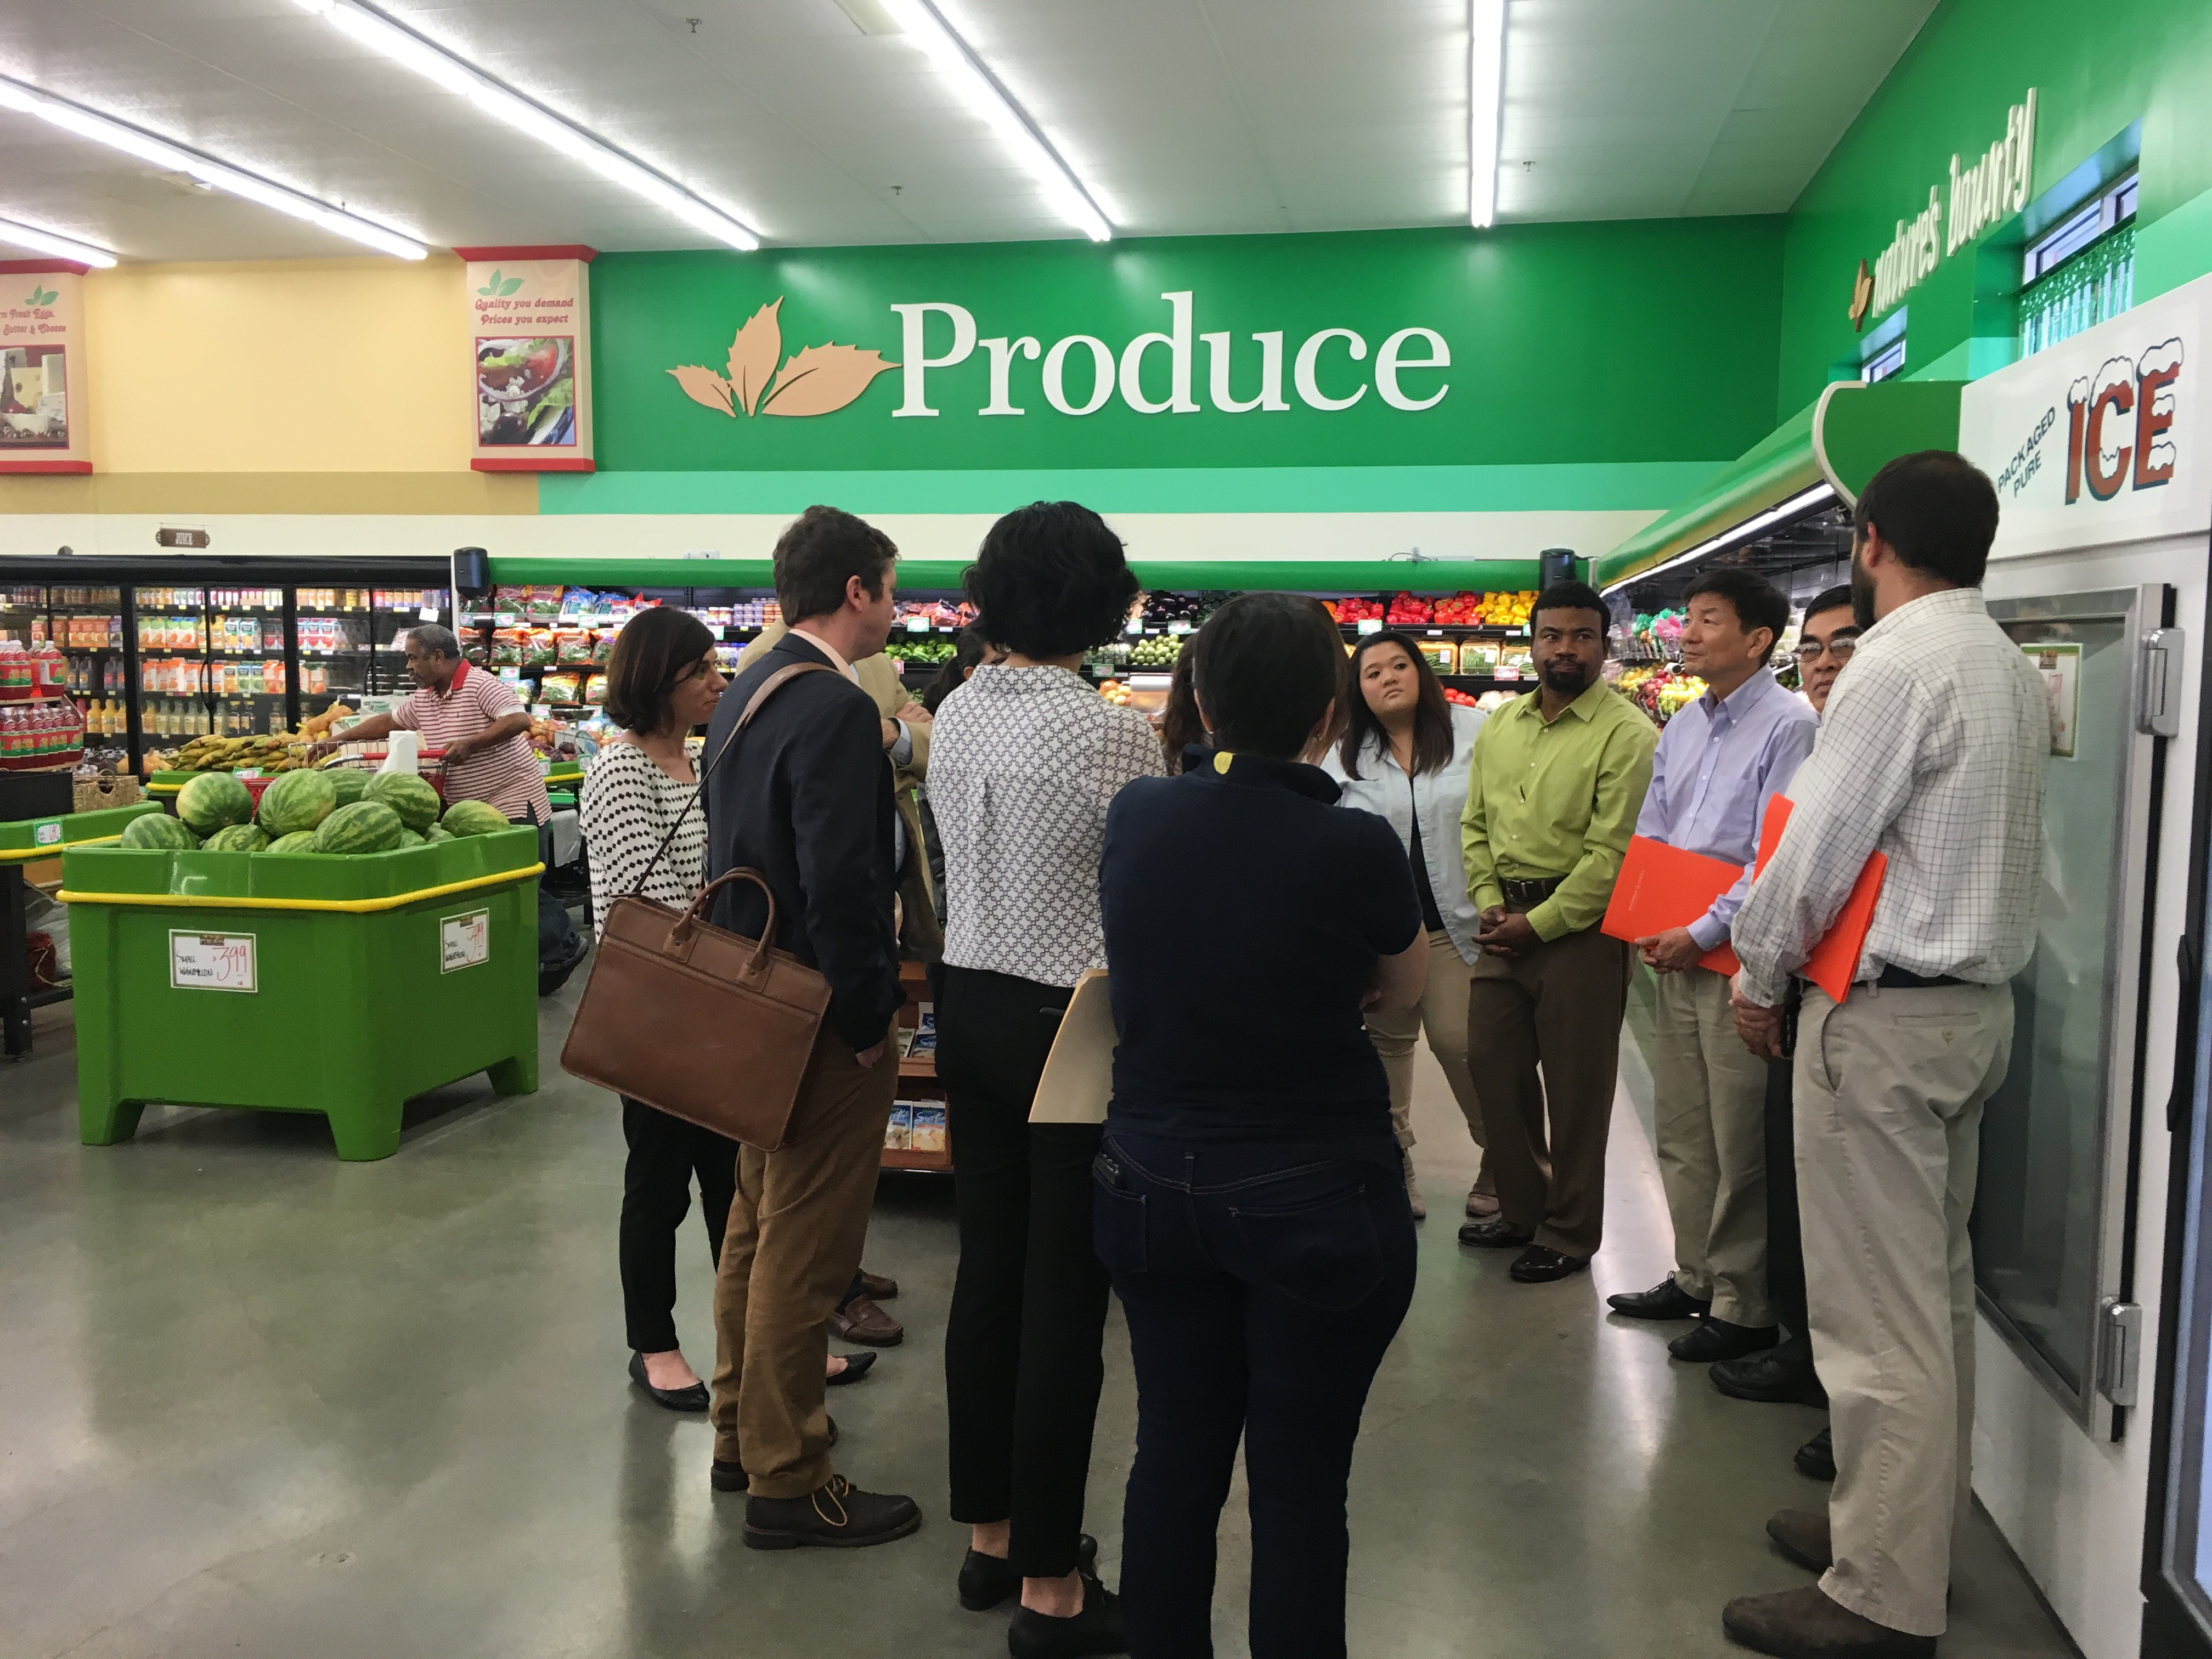 Group gathering in grocery store